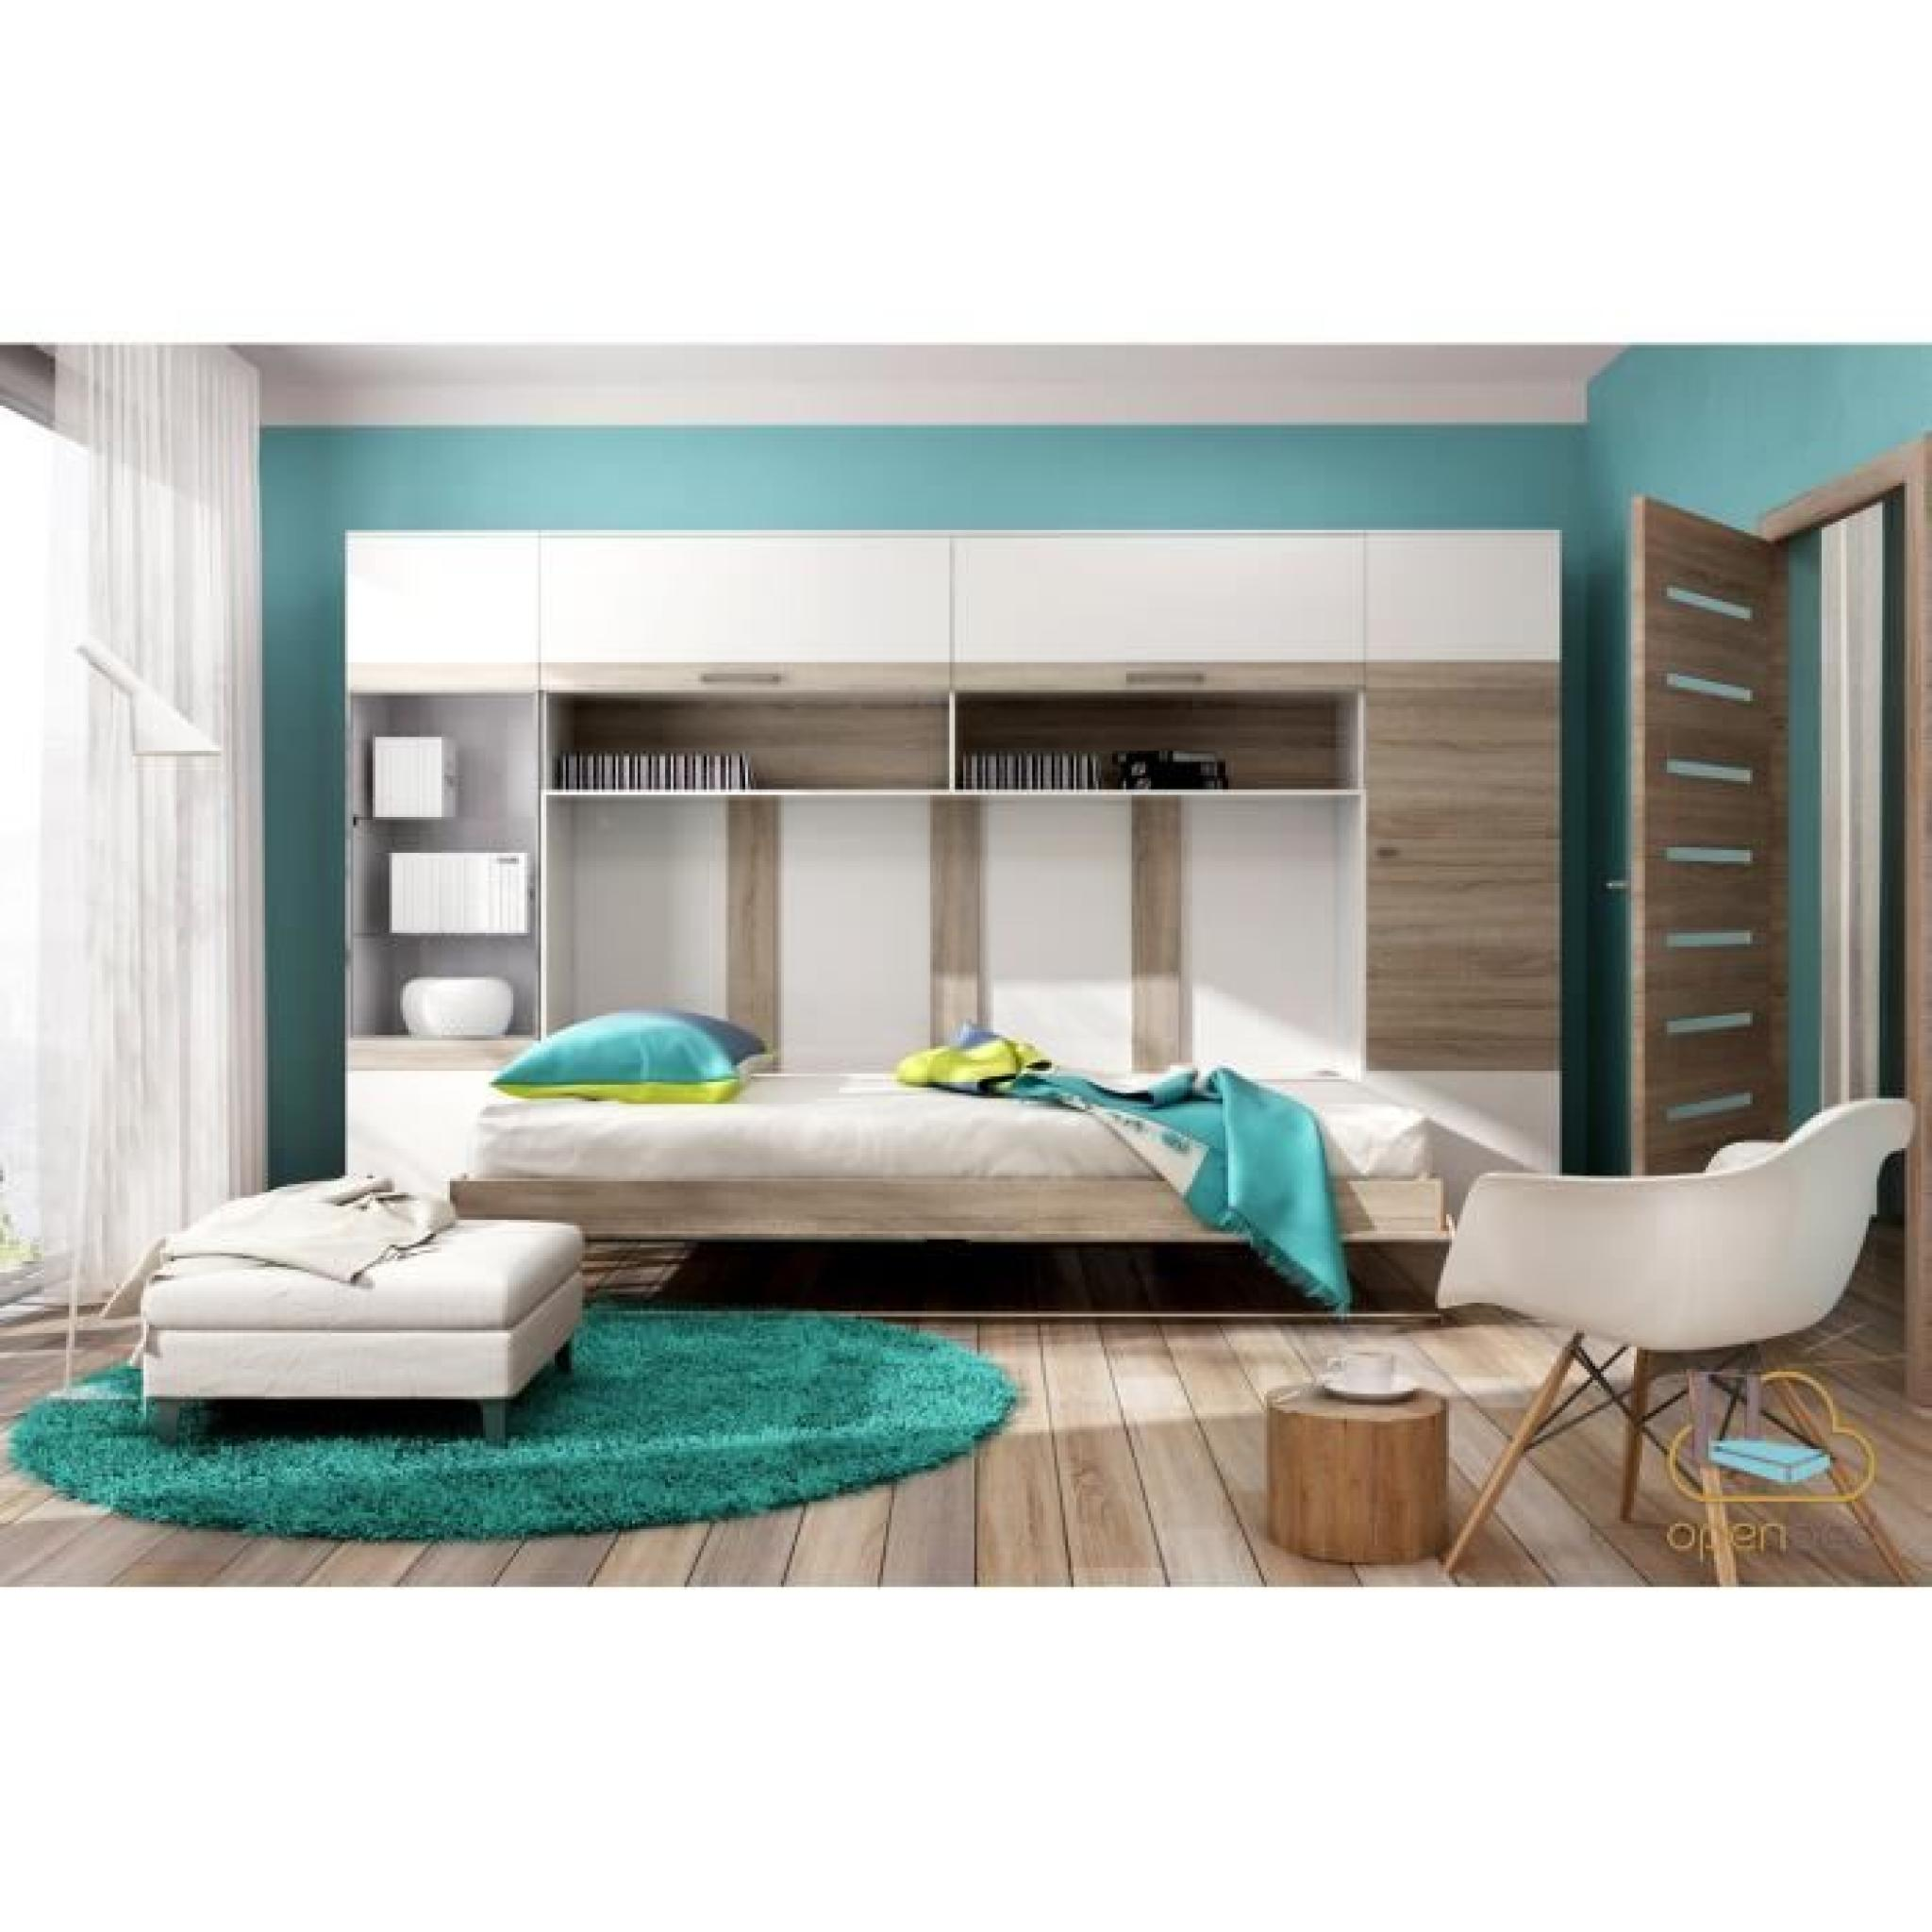 achat lit pas cher lit bebe transformable pas cher tour de lit adulte alinea parure de lit pas. Black Bedroom Furniture Sets. Home Design Ideas